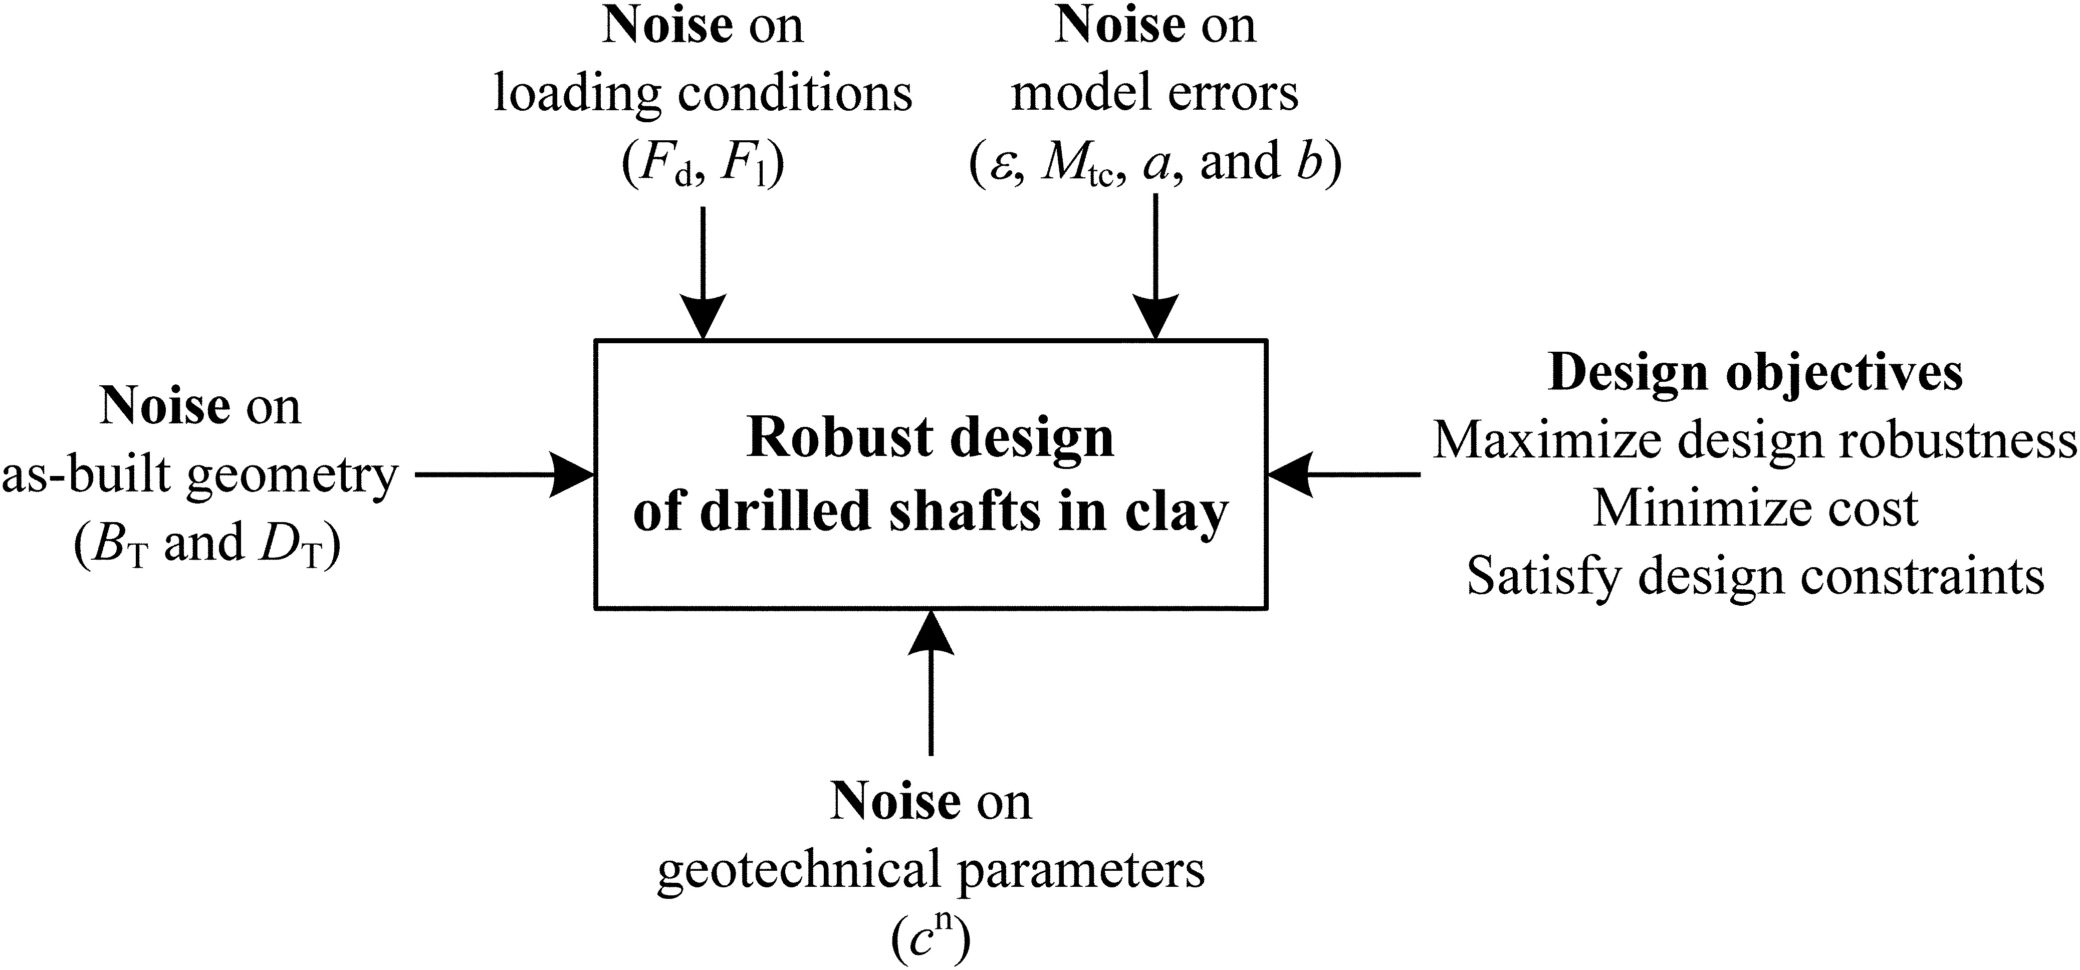 Drilled Shaft Design Spreadsheet Within Efficient Robust Geotechnical Design Of Drilled Shafts In Clay Using